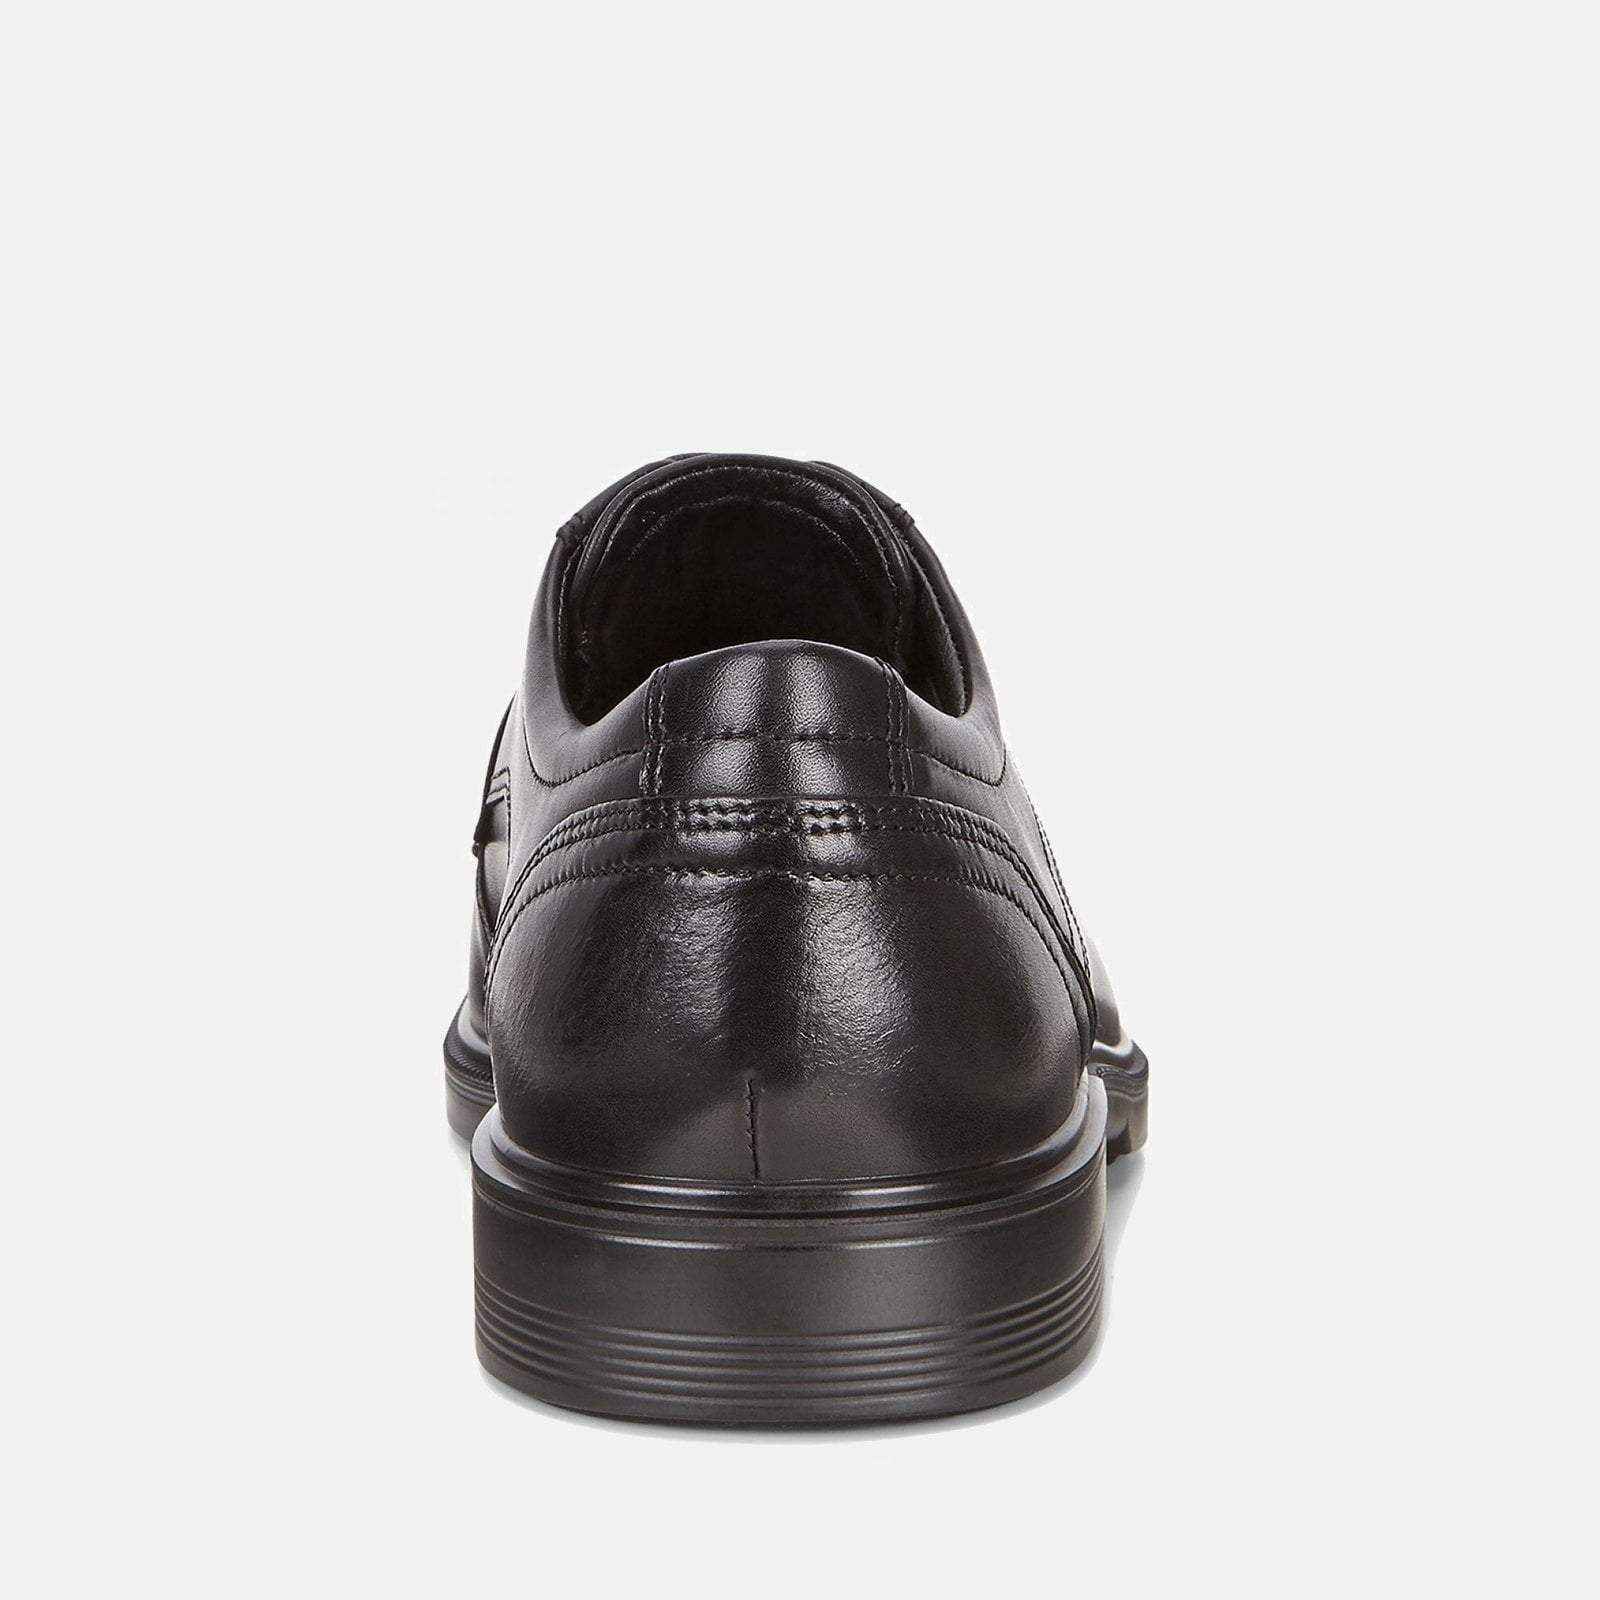 cbb5cf64db Ecco Footwear UK 6.5-7 / EU 40 / US 6-6.5 / Black. Ecco Footwear UK 6.5-7 /  EU 40 / US 6-6.5 / Black